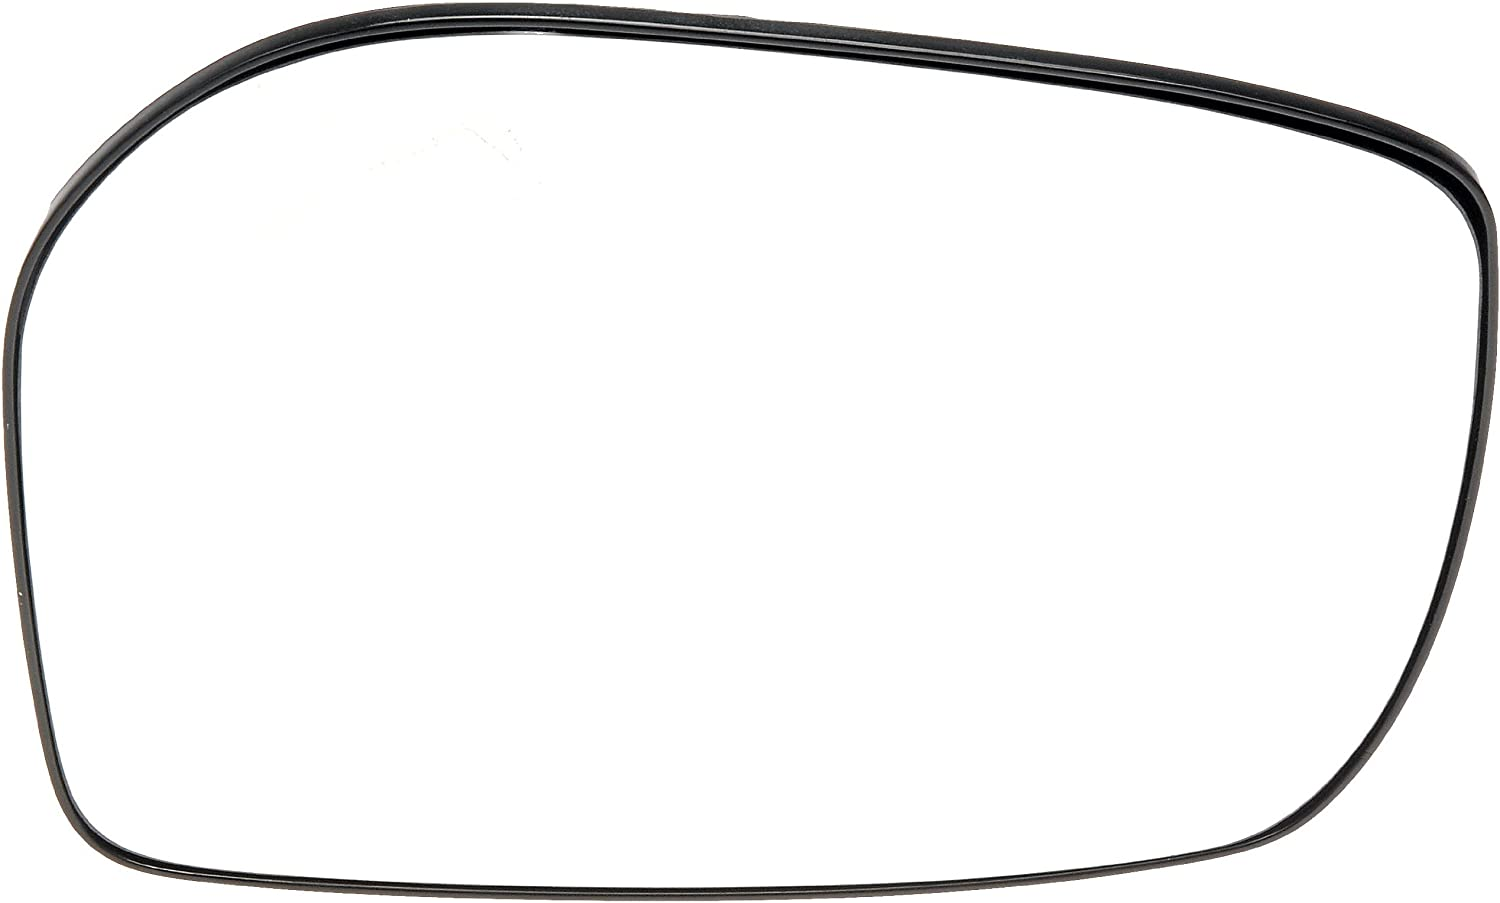 Dorman 56473 Passenger Side Door Mirror Glass for Select Toyota Models